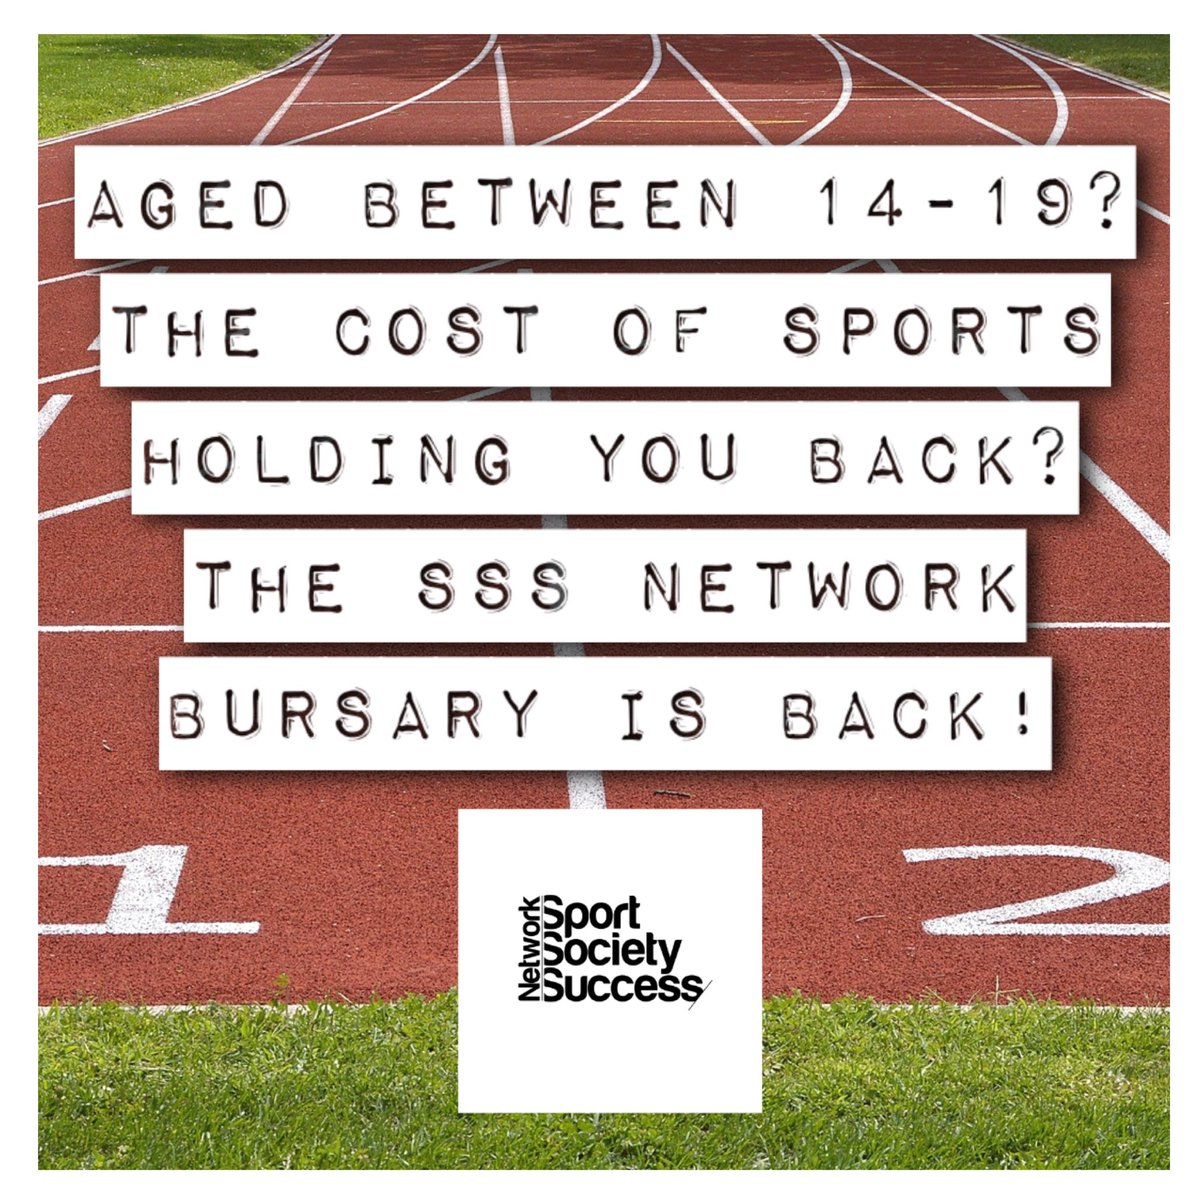 Th #sssnetwork #bursary is back! The opportunity to apply between 01.03.20-01.04.20 ... find out more here https://t.co/3Fh61KiazP  please retweet  #rt #sportsocietysuccessnetwork #sports #youthsports #helpinghand #fightforgood #sportforgood